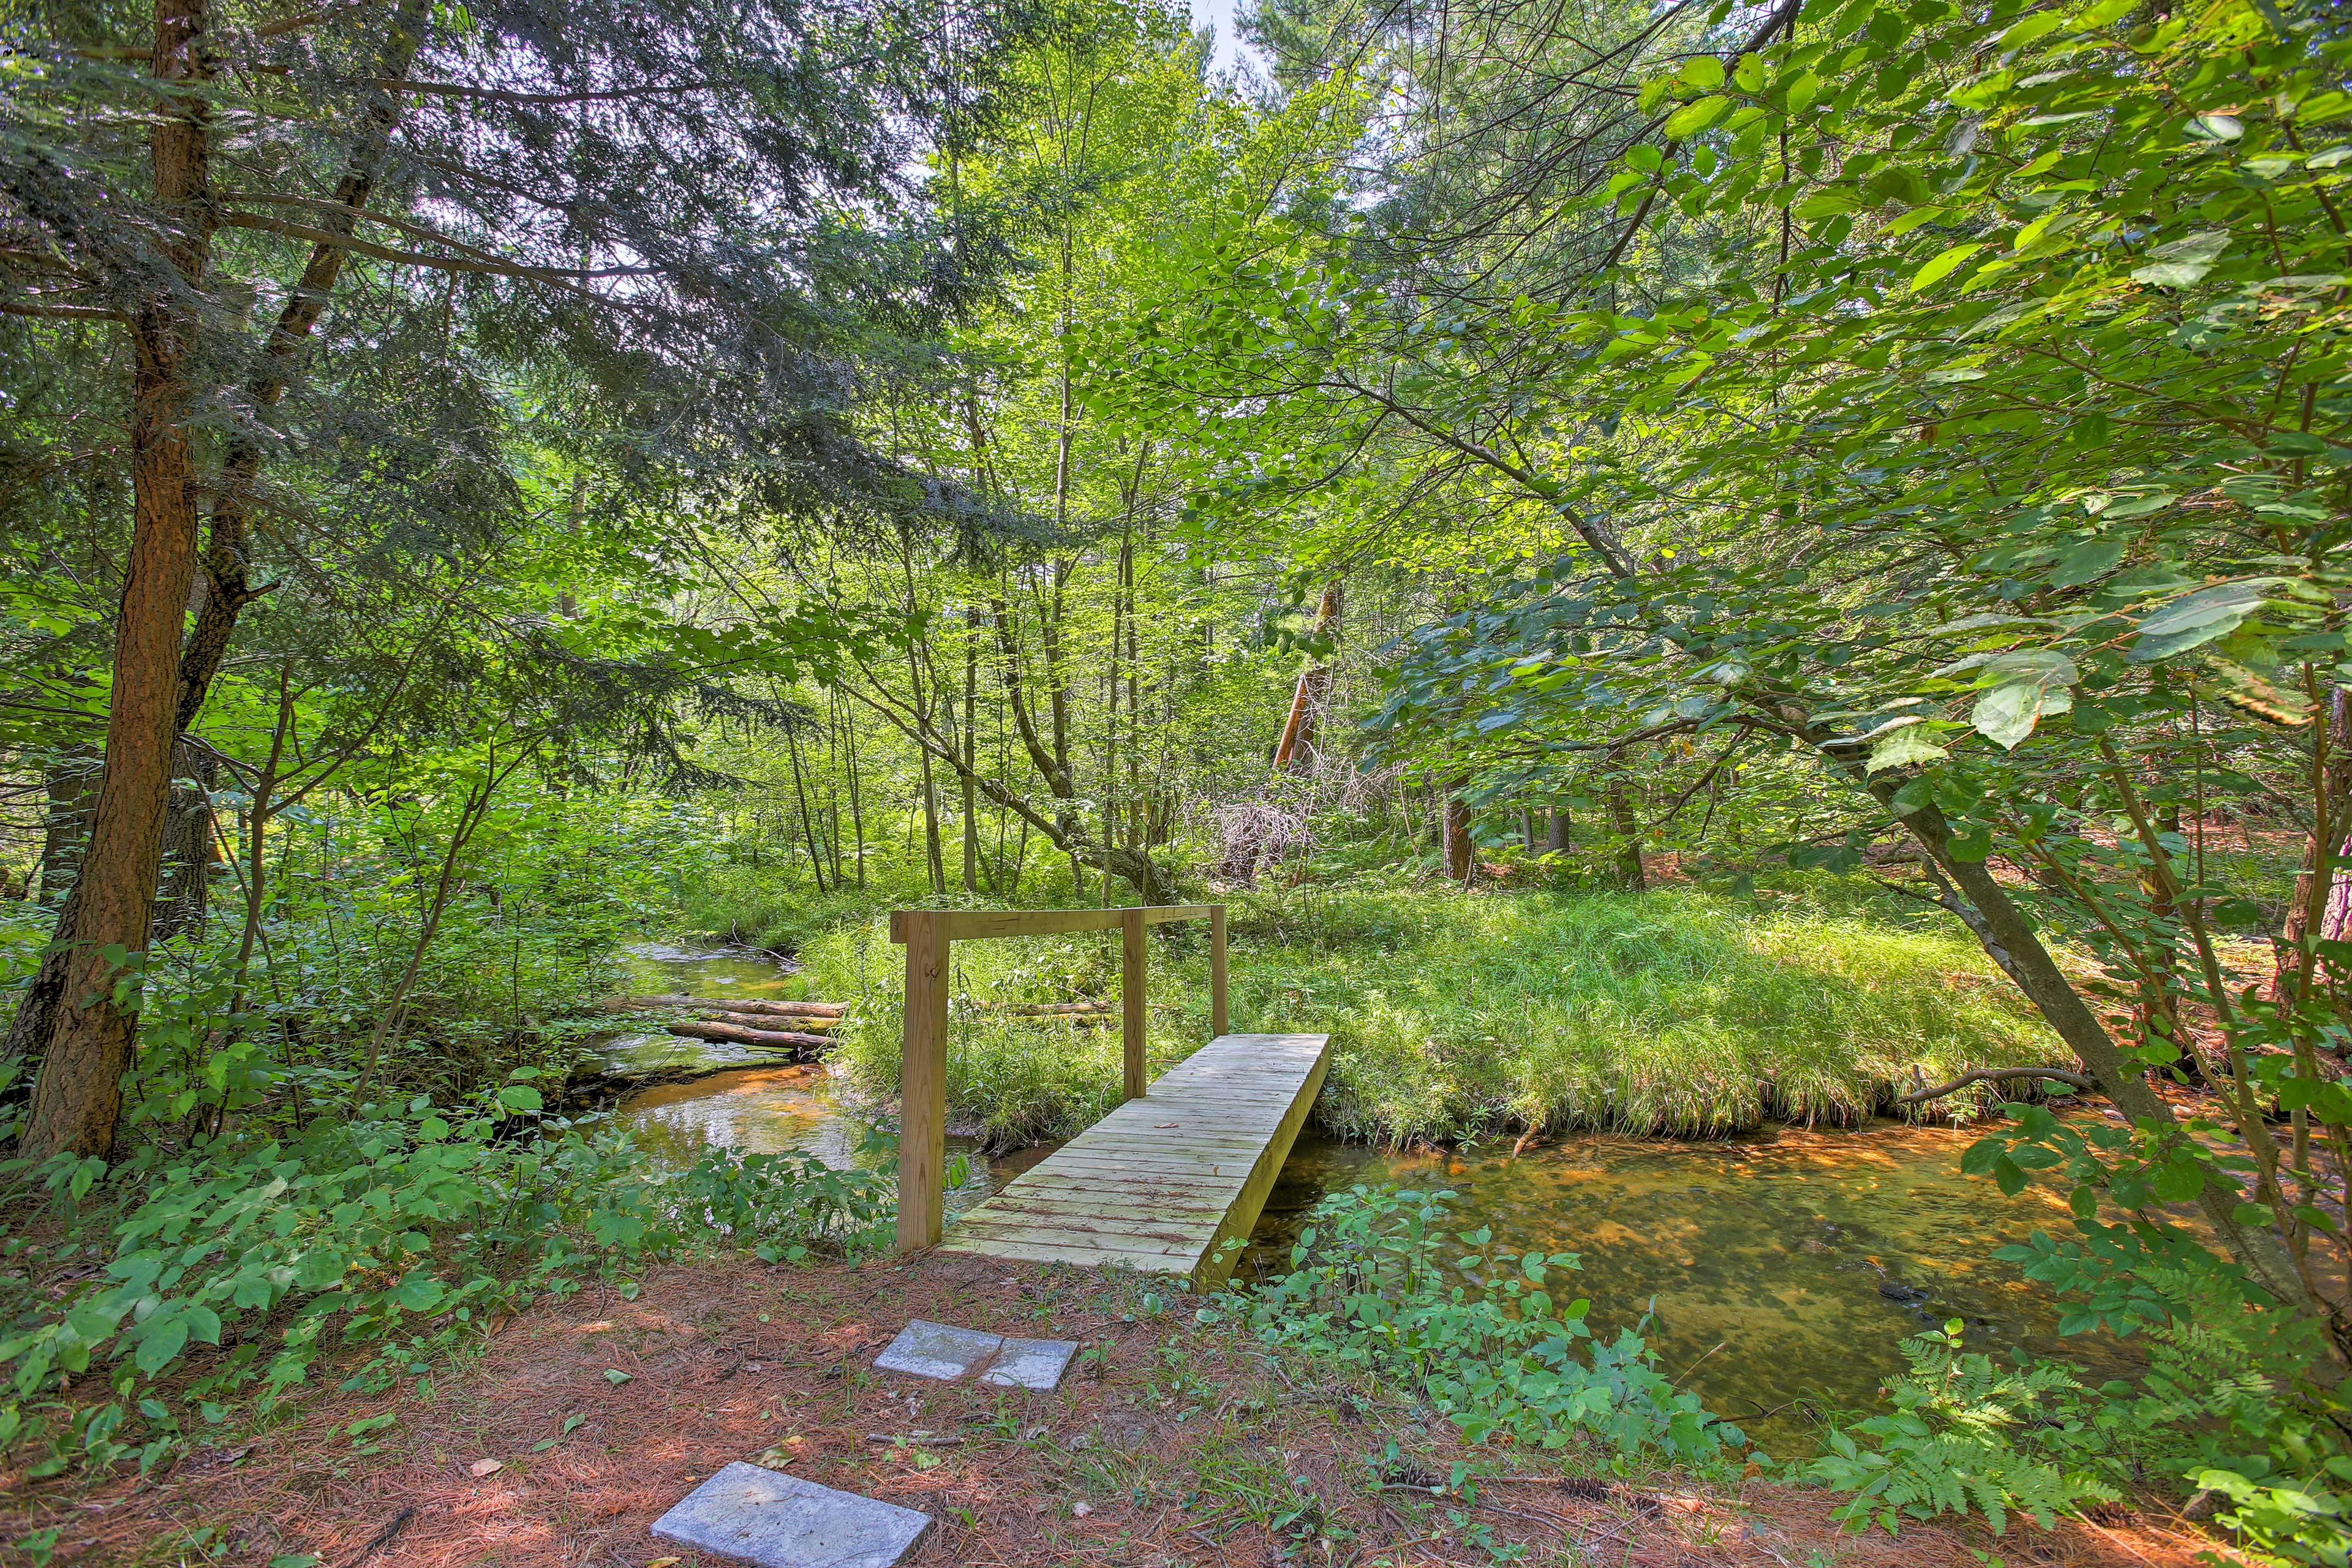 The property includes several miles of trails showcasing northwest MI landscape.